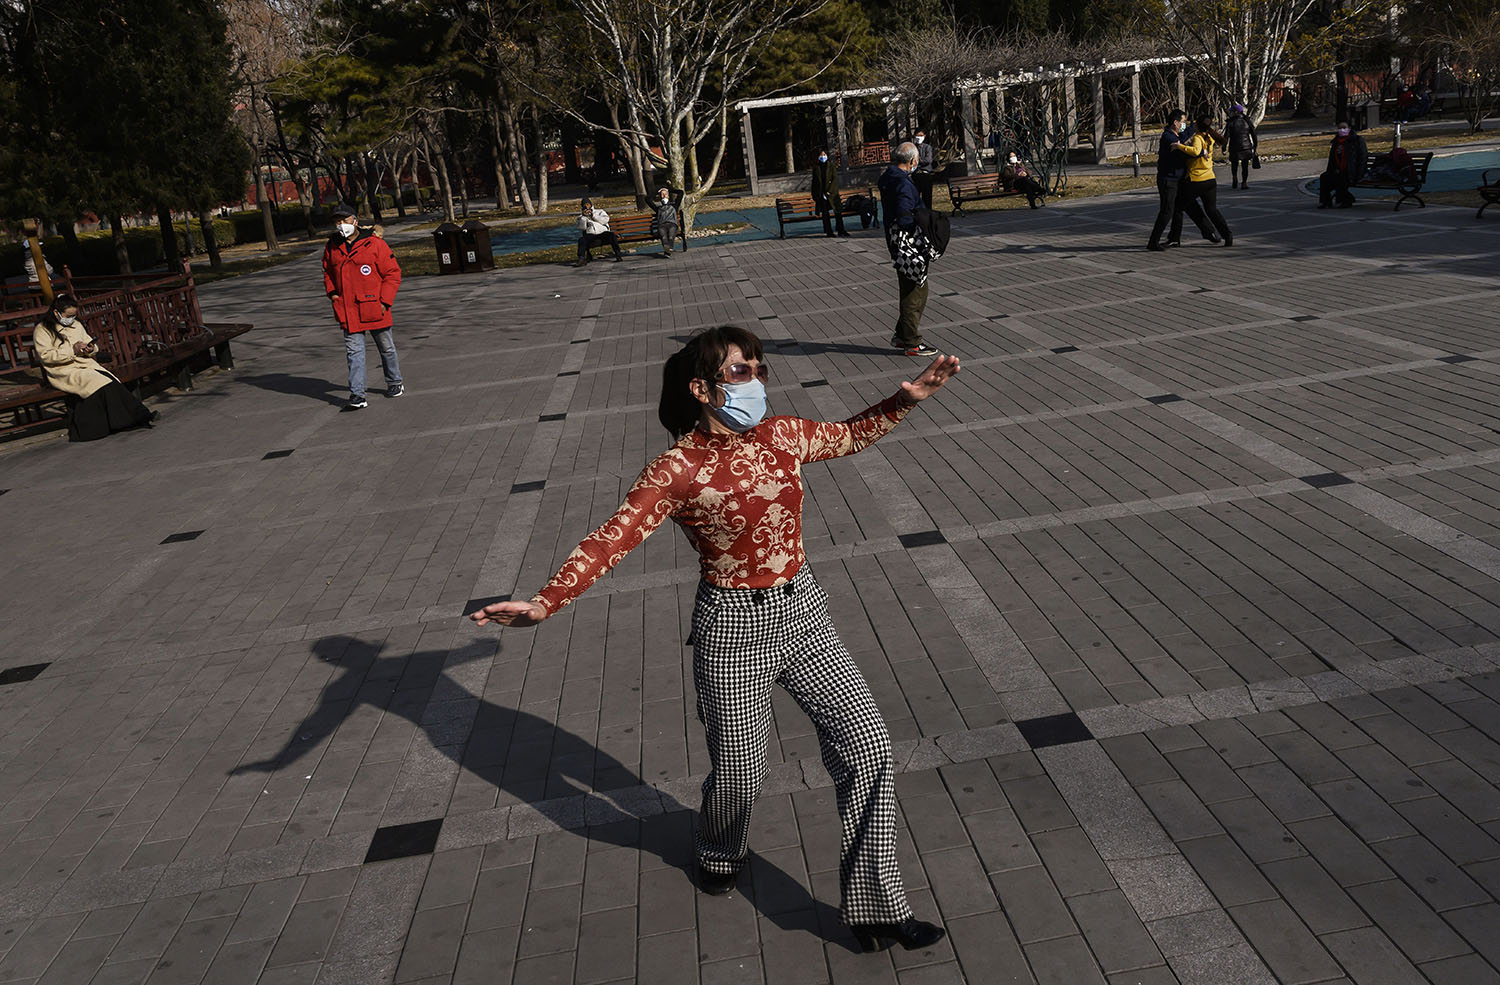 A Chinese woman wears a protective mask as she dances in a sparsely attended park in Beijing on Feb. 23.